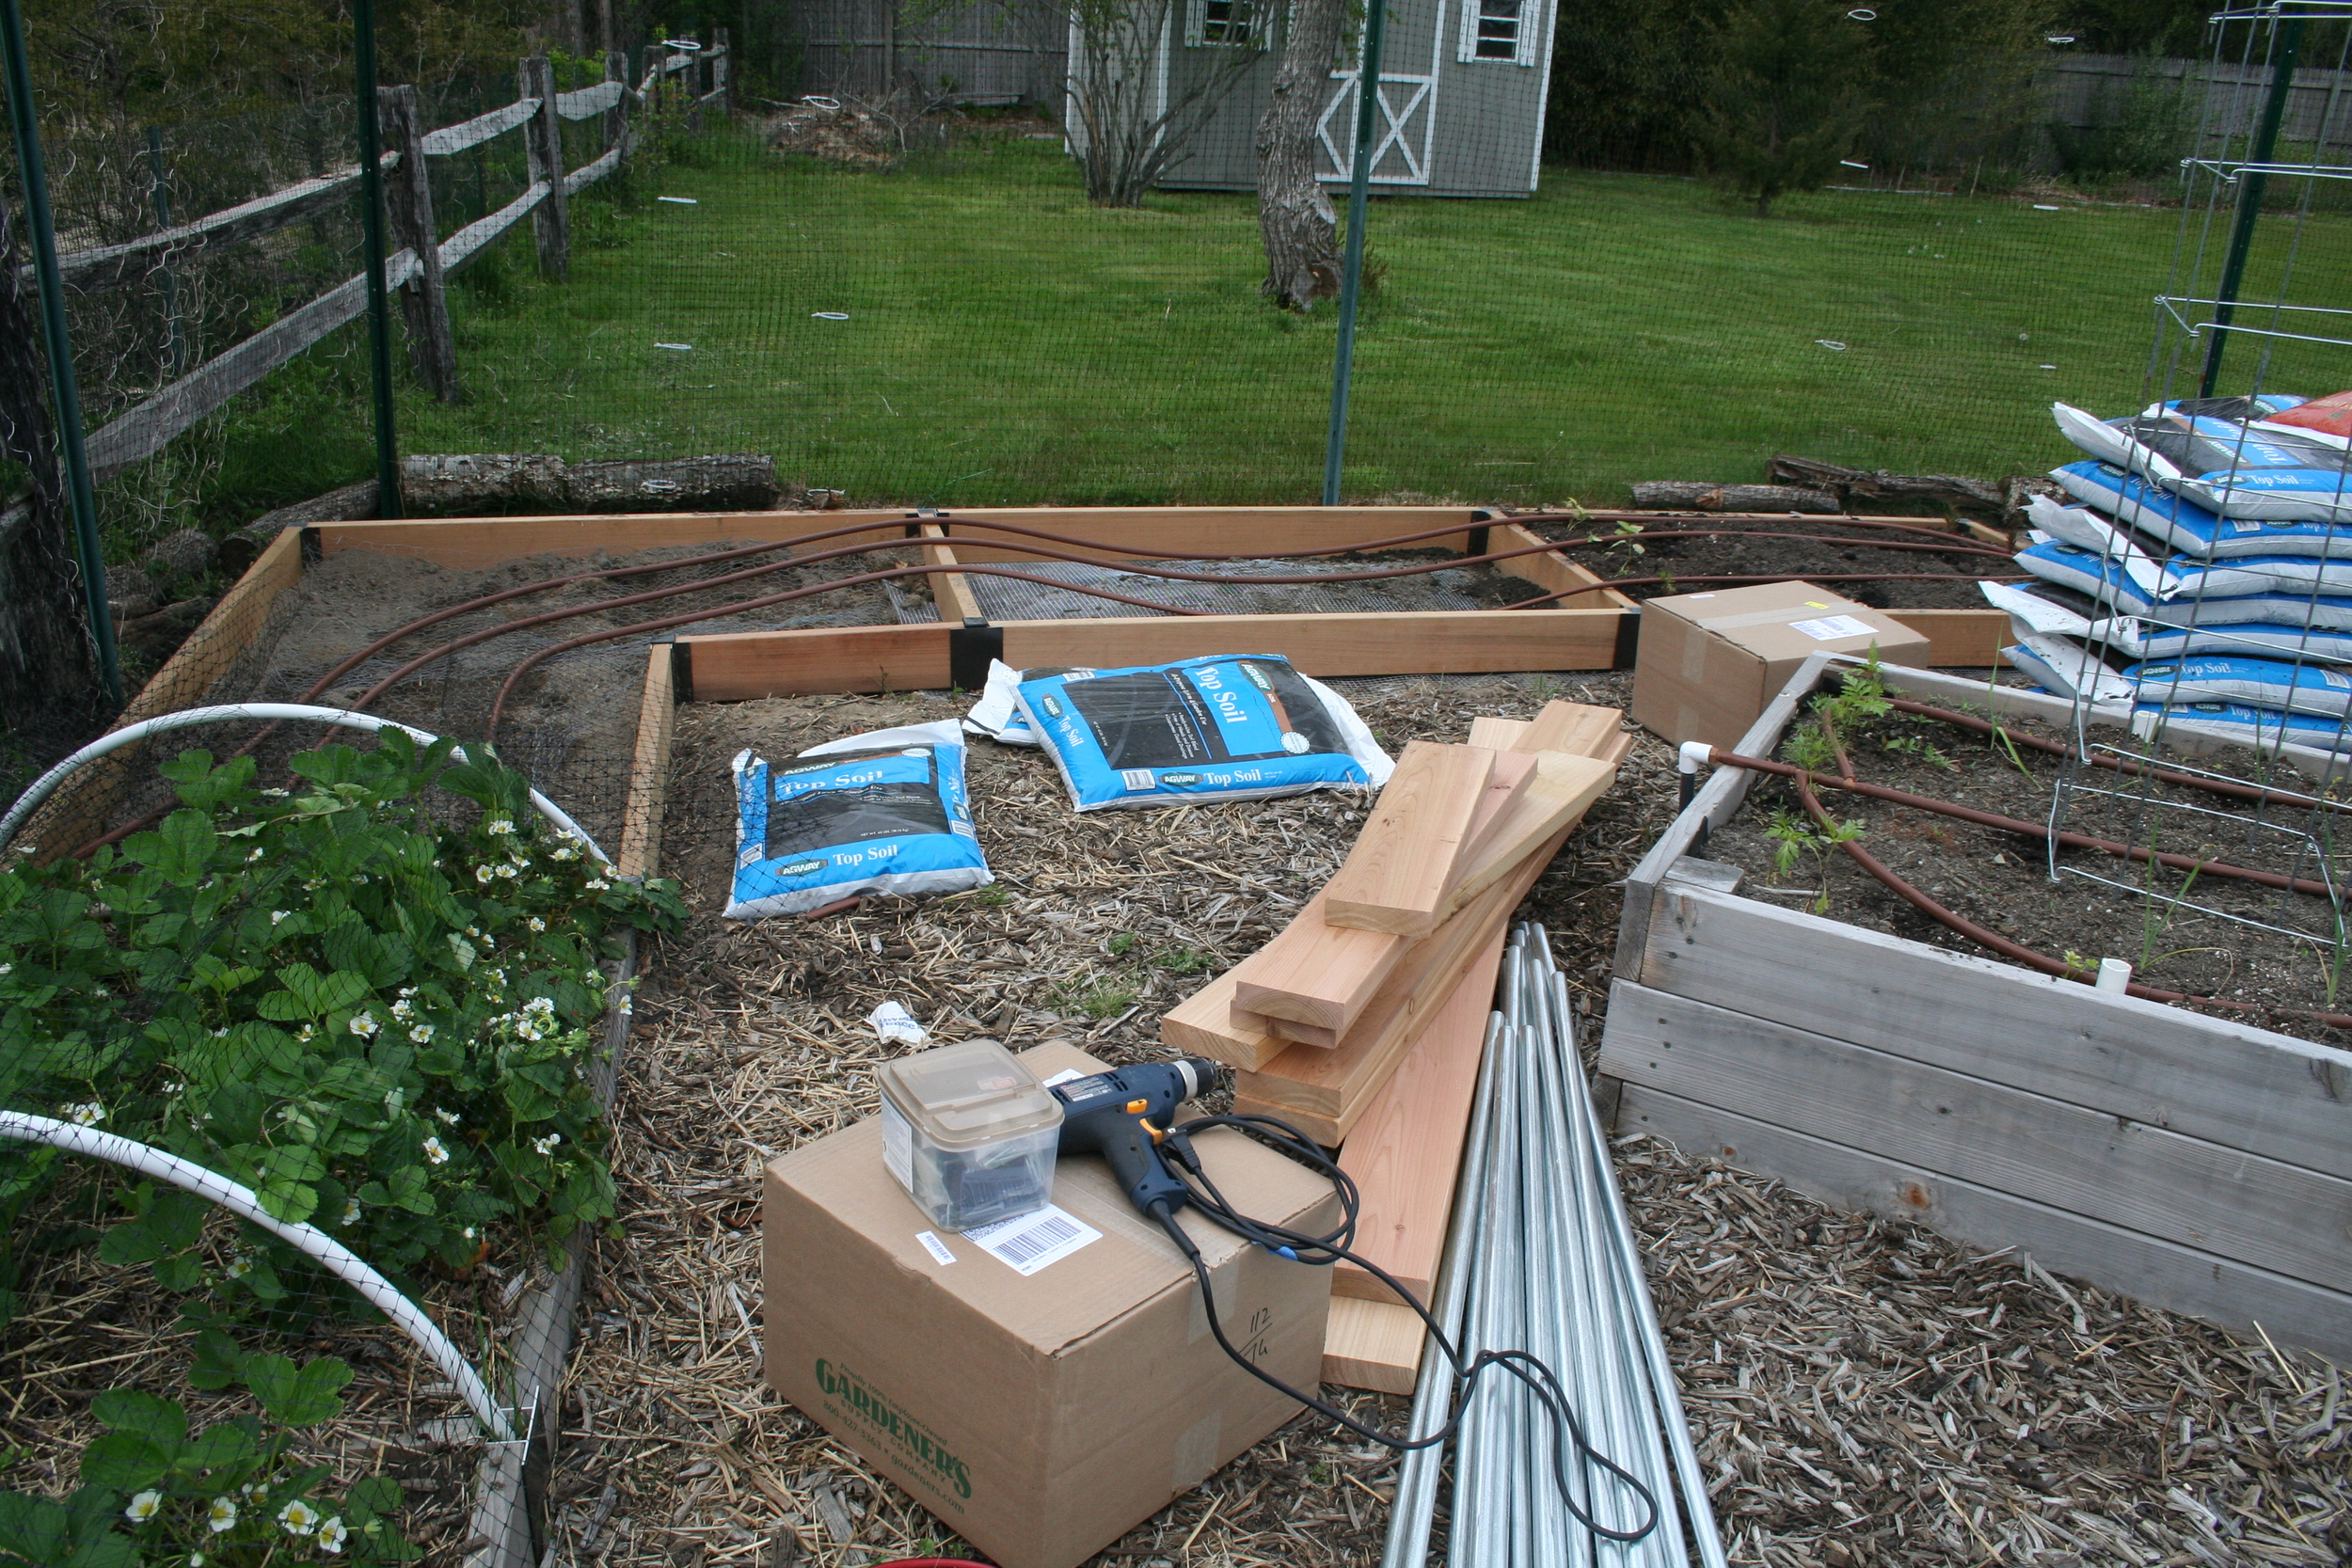 Original raised bed on the right; expansion materials and new bed half completed at center.